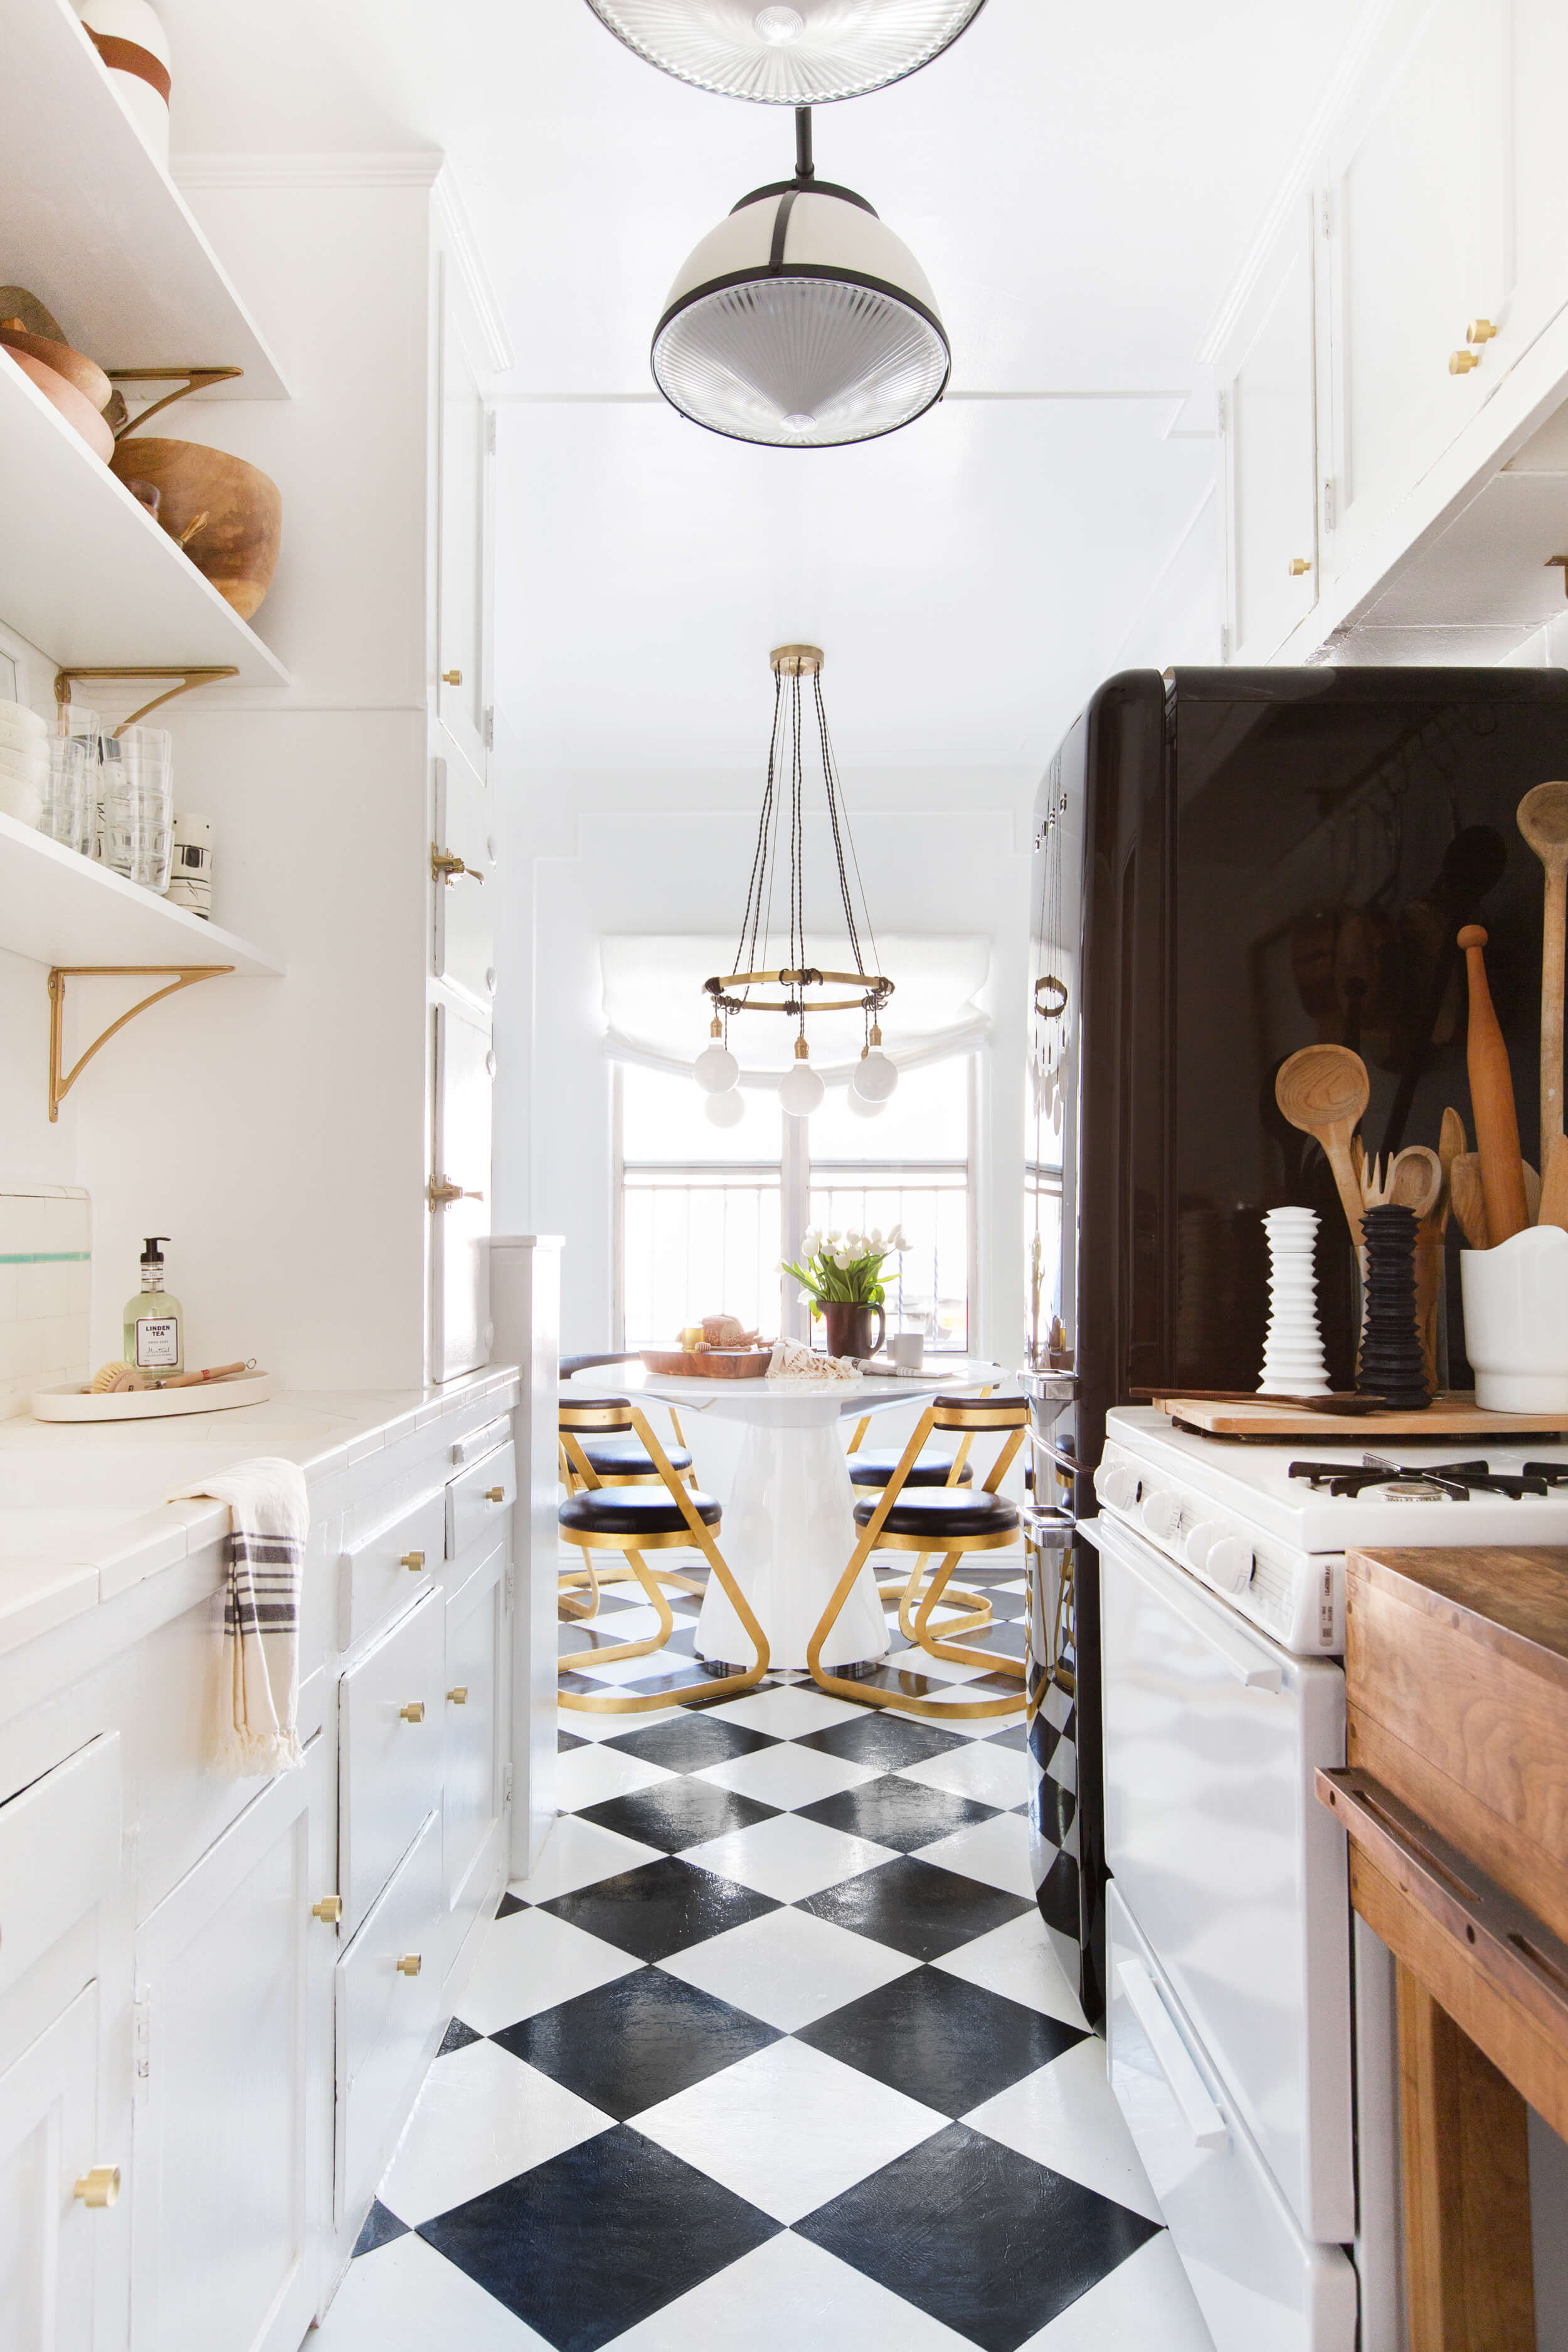 Brady-Tolbert_Emily-Henderson_Black-and-White-Kitchen_Vintage_Apartment-Refresh_Wood_Brass_Checkered-Floor_Copper-Pots_Eclectic_Glam_Modern_Traditional_18